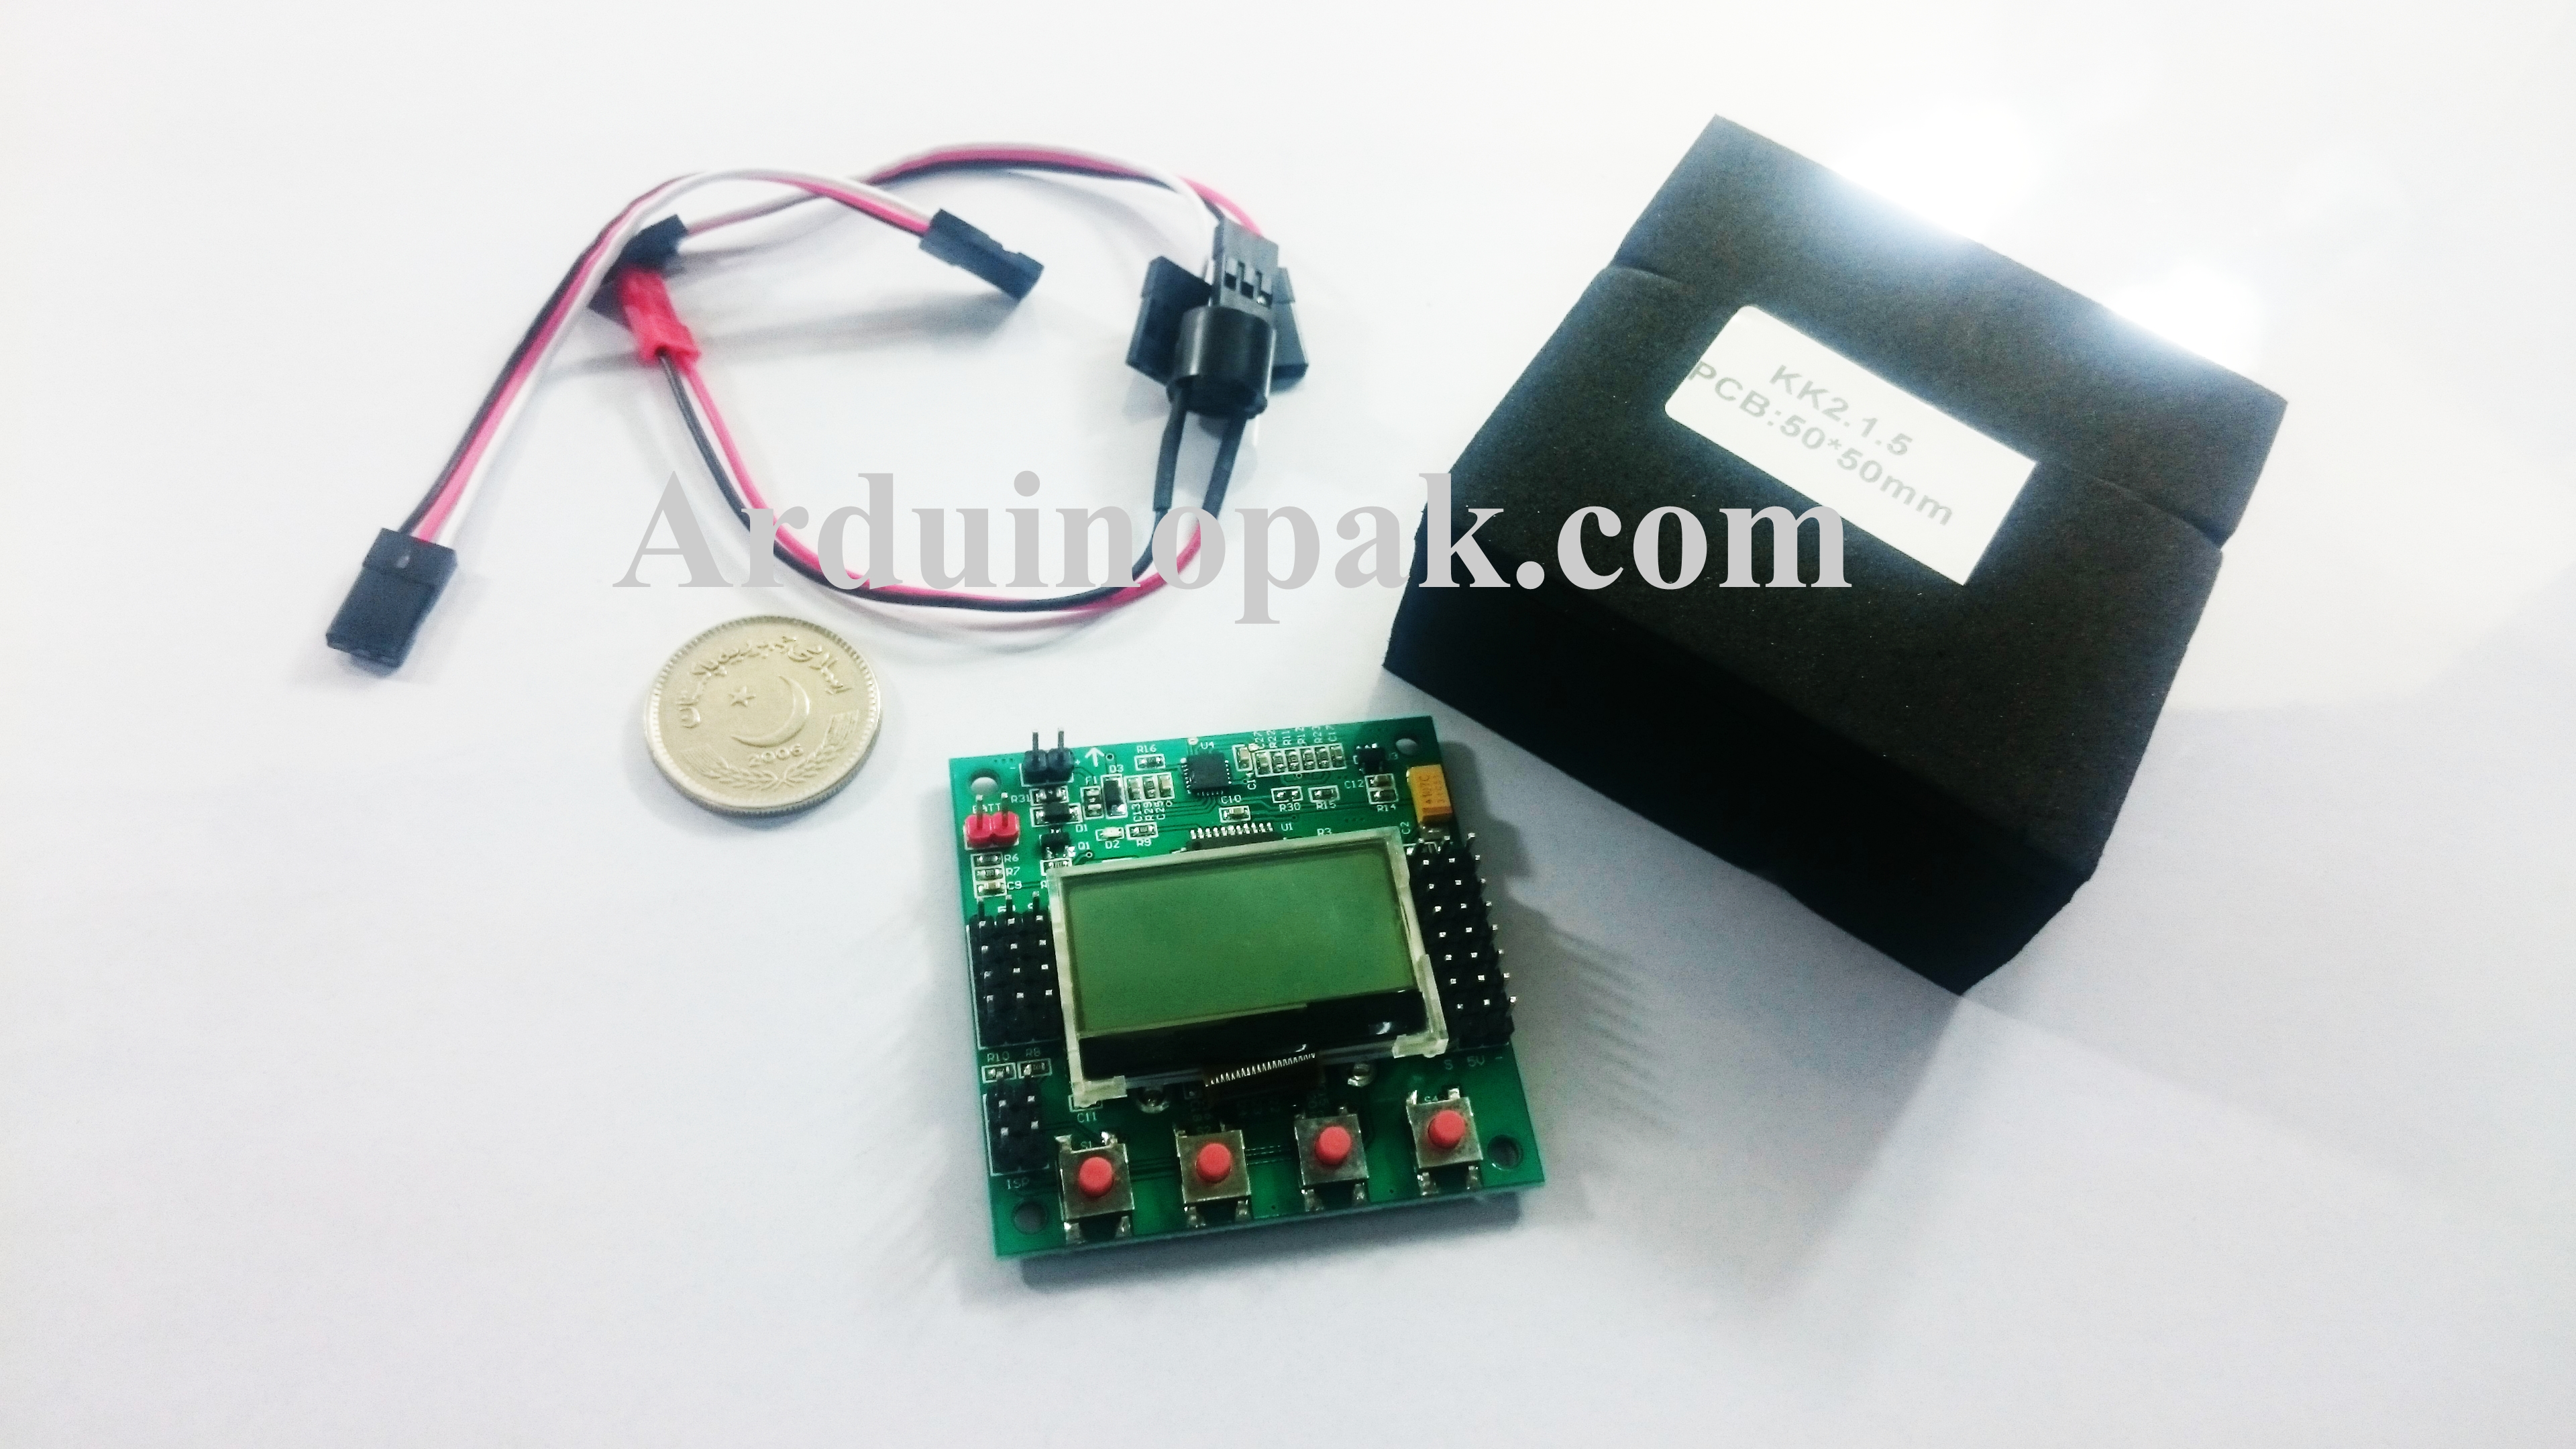 KK2.1.5 LCD Flight Control Board for quadcopter, H